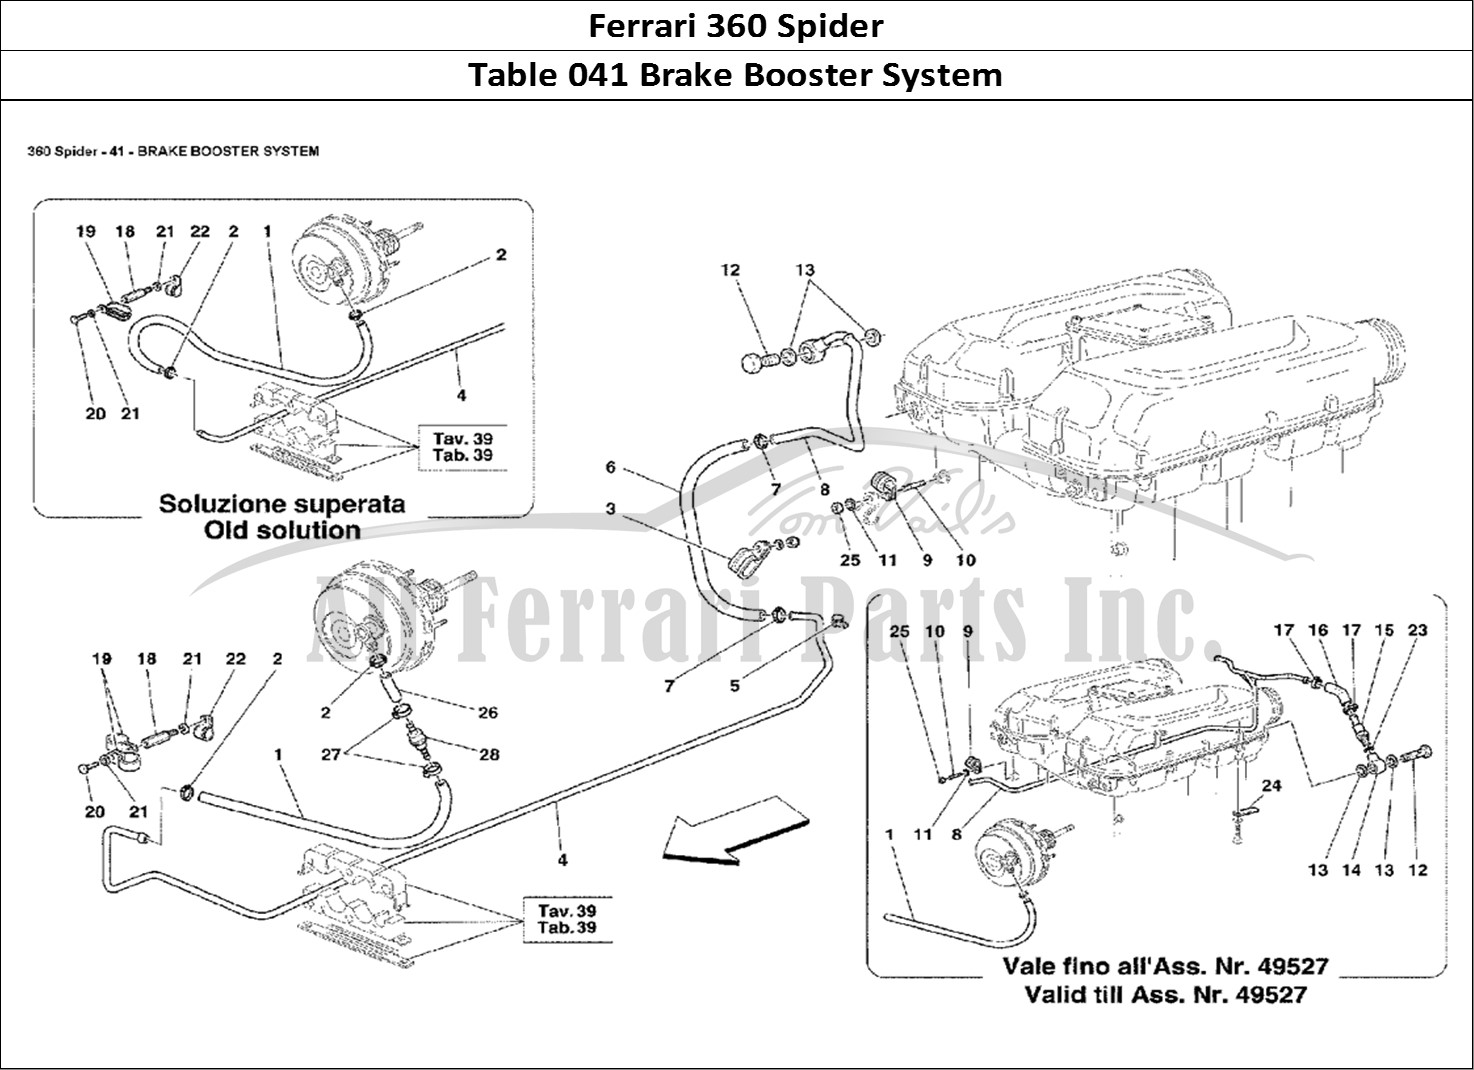 Buy Original Ferrari 360 Spider 041 Brake Booster System